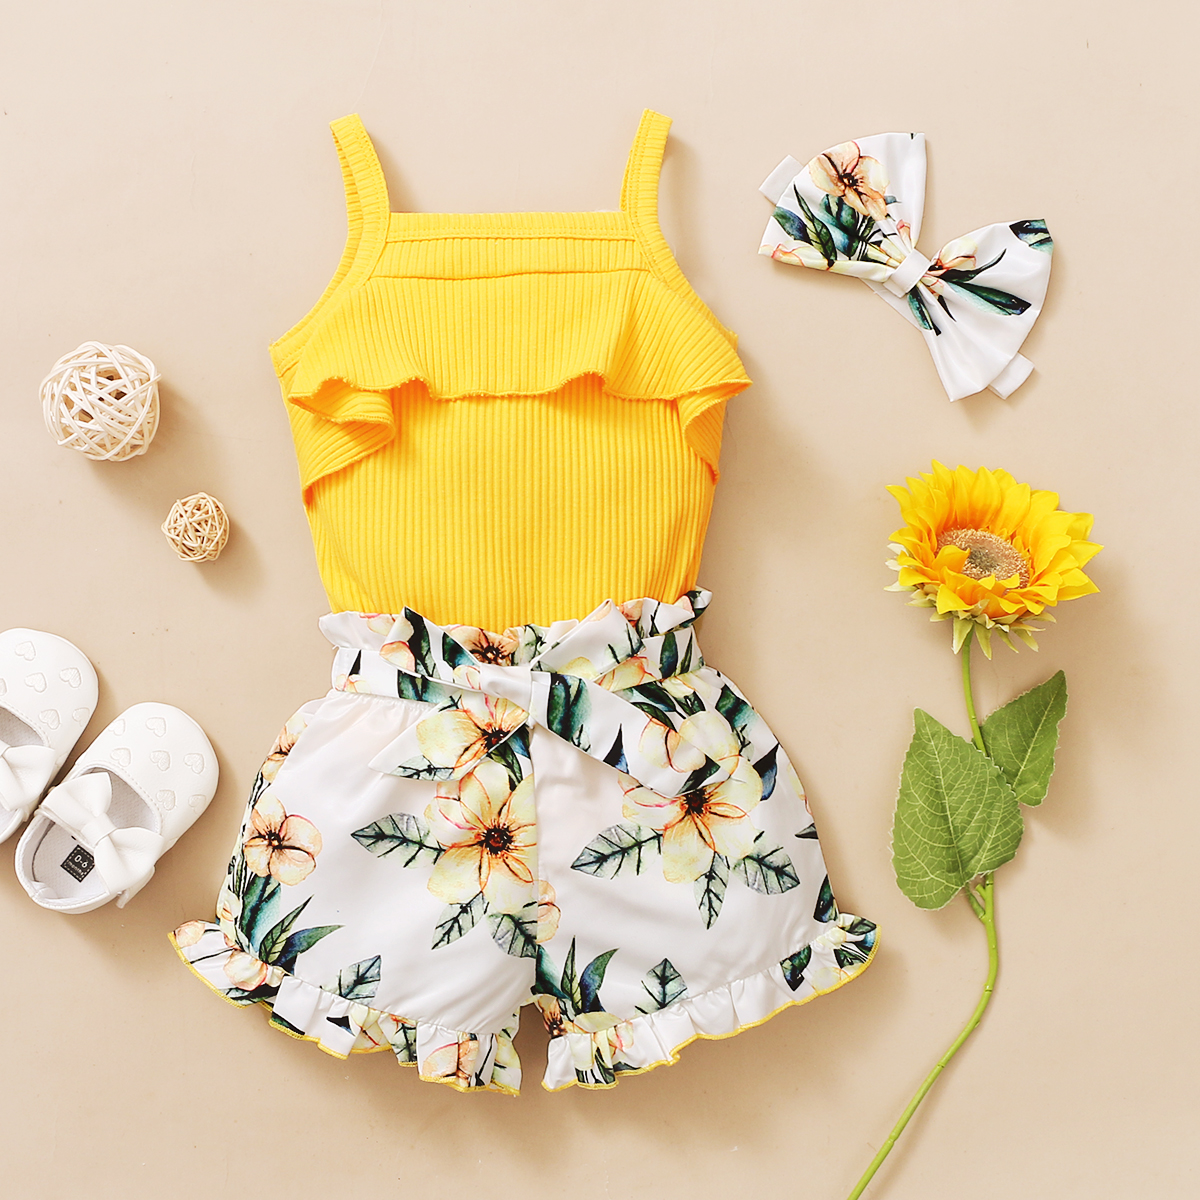 3Pcs Newborn Baby Girls Summer Clothes Cute Beach Boho Strap Ruffle Romper Floral Shorts Toddler Outfit Baby Girls Clothing 4